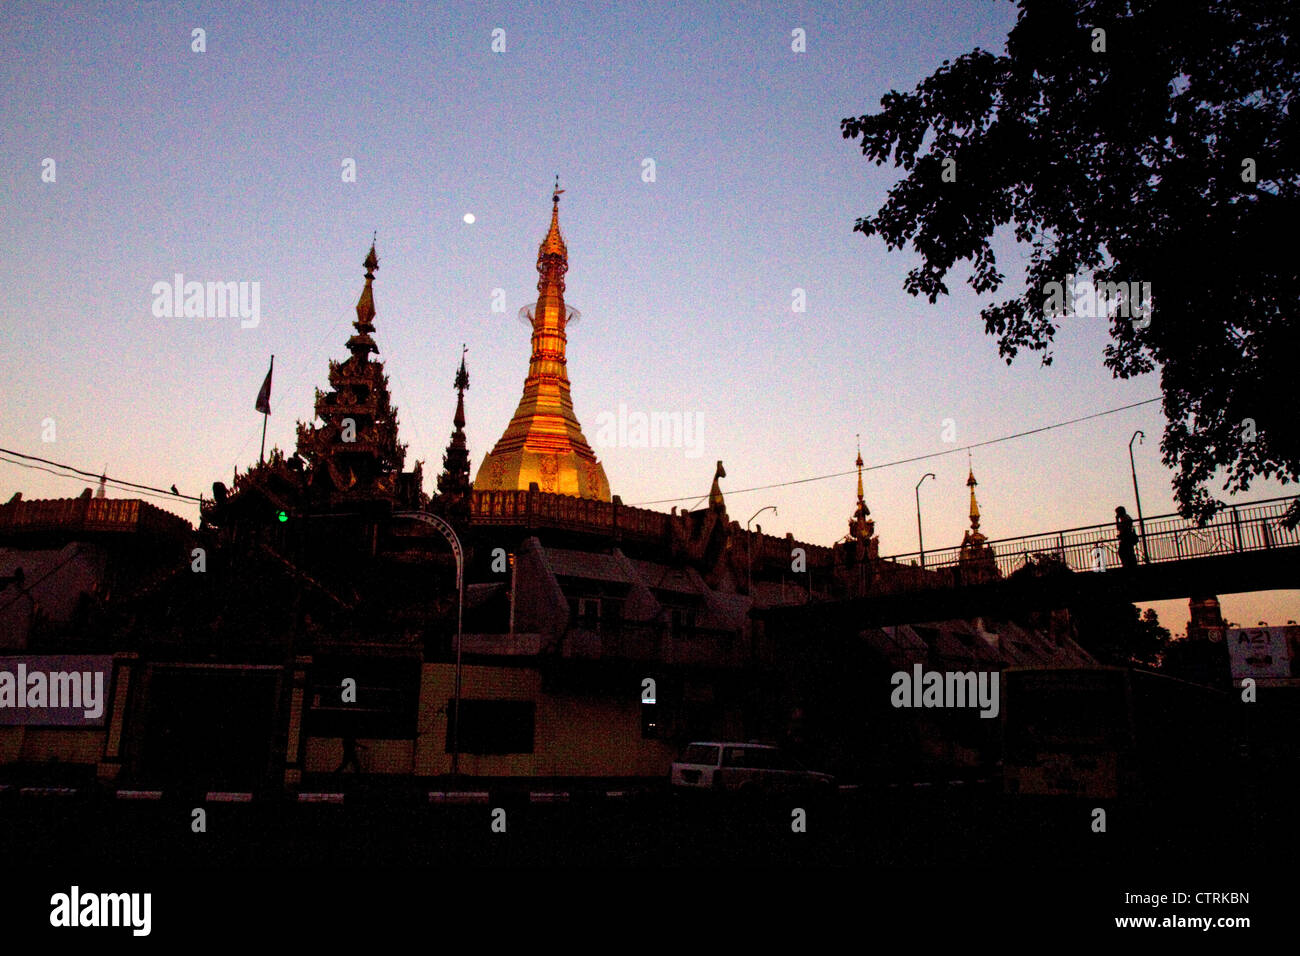 Sule Paya located in the heart of downtown (Rangoon) Yangon, (Burma) Myanmar. - Stock Image